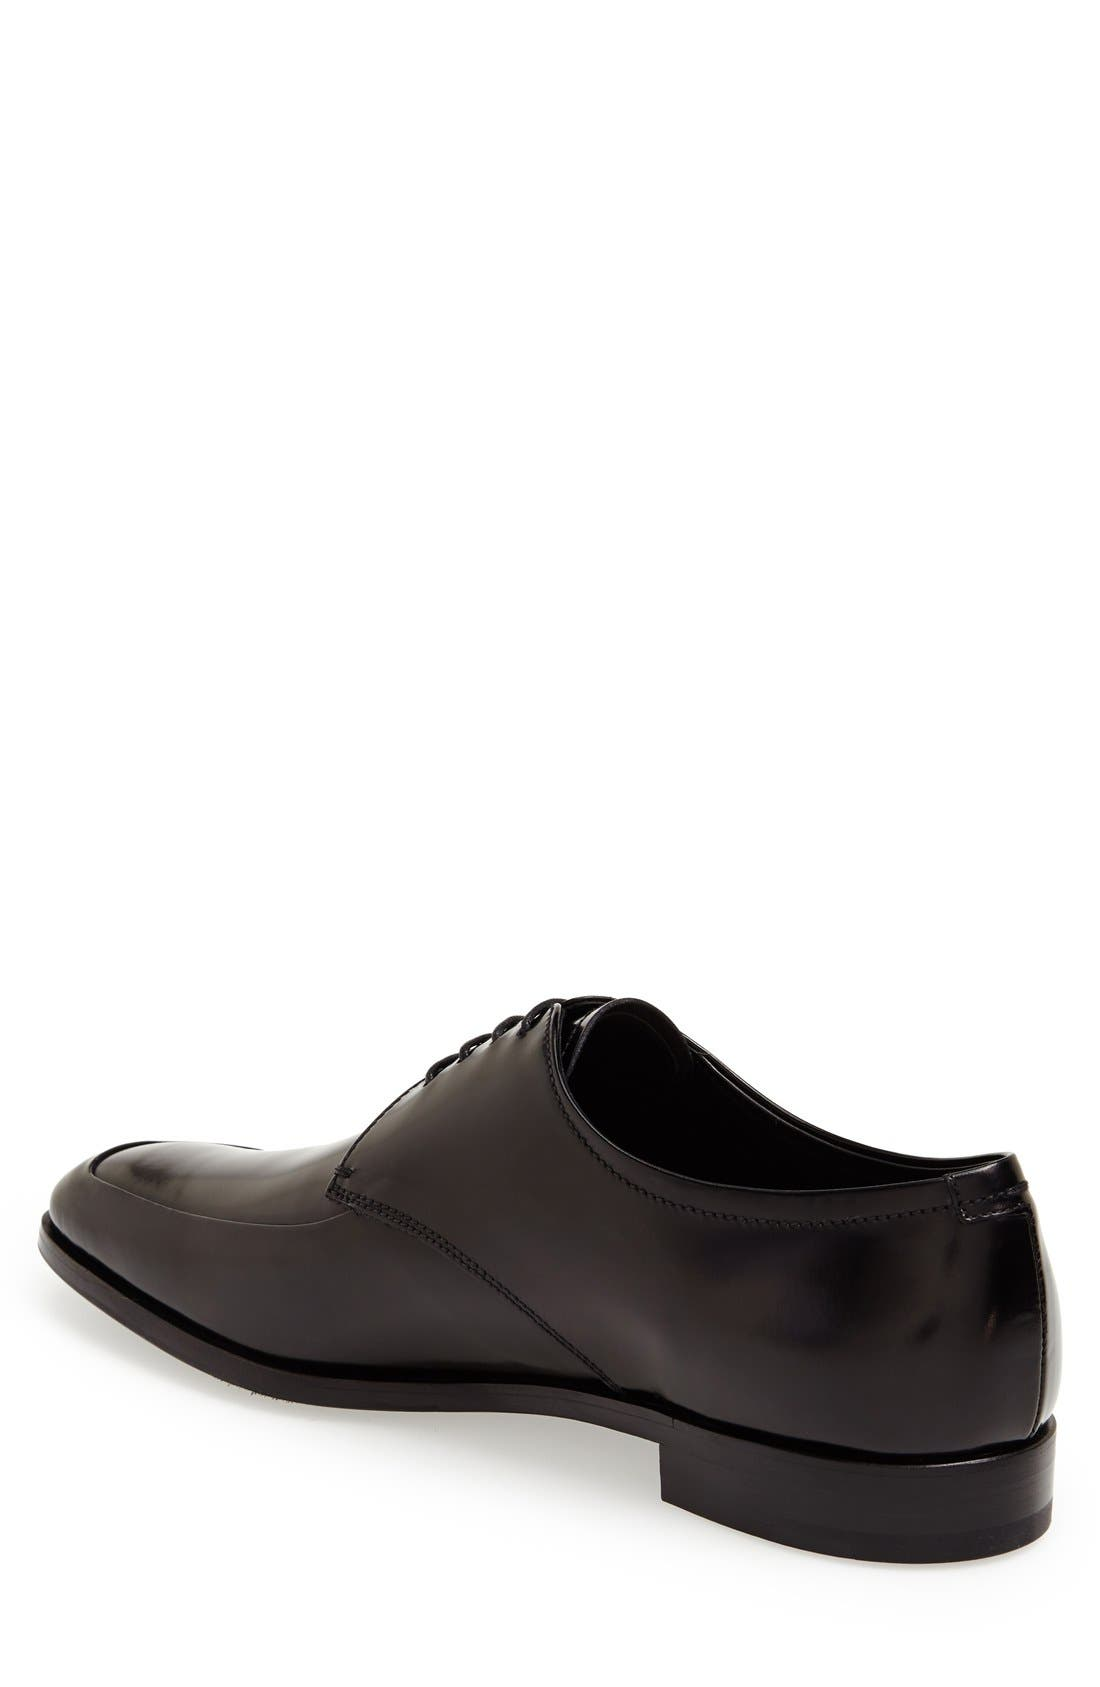 Alternate Image 2  - Prada High Shine Apron Toe Oxford (Men)